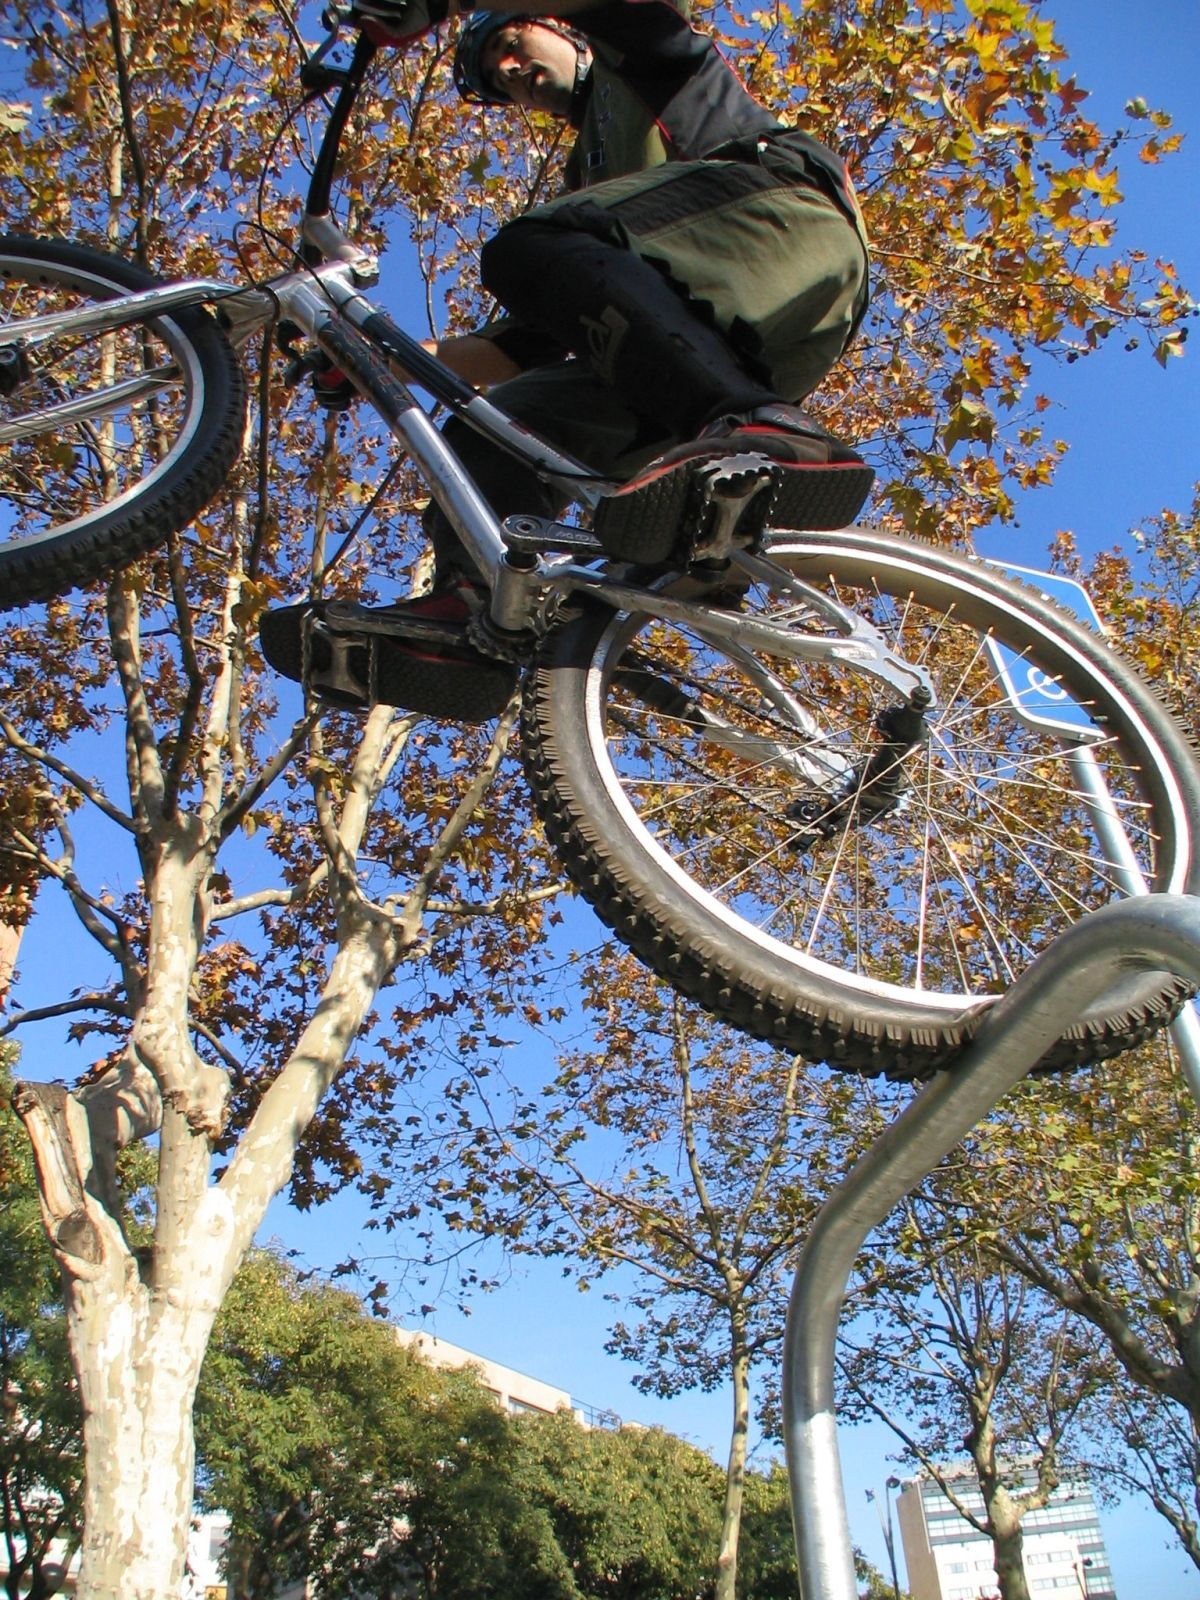 trials bike video